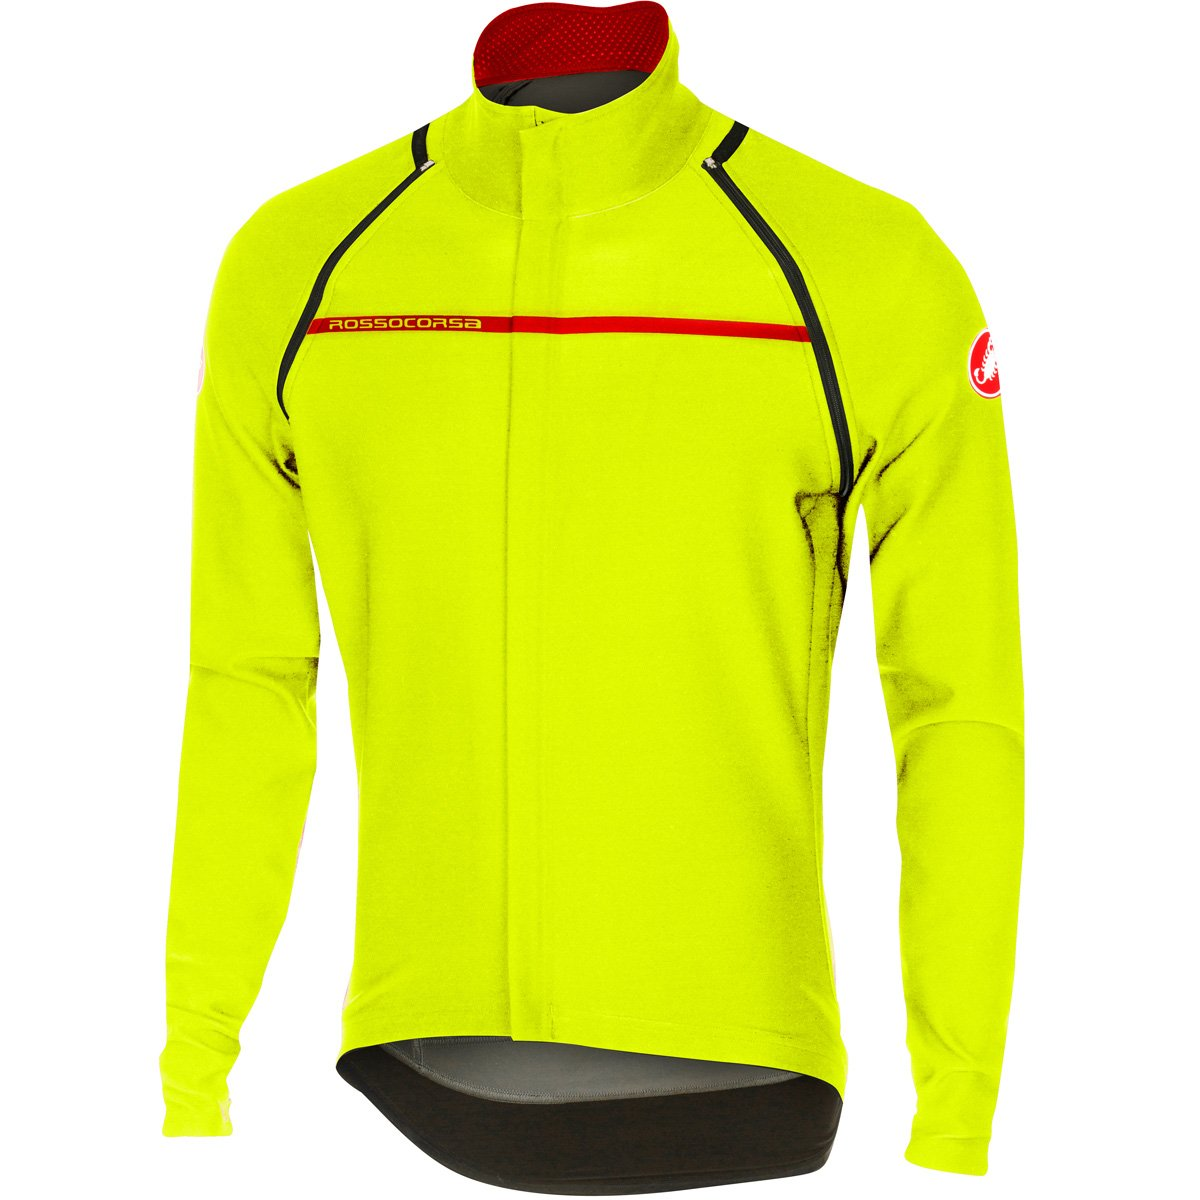 Castelli OUTERWEAR メンズ X-Large イエロー(Yellow Fluo) B075FX1ZB2